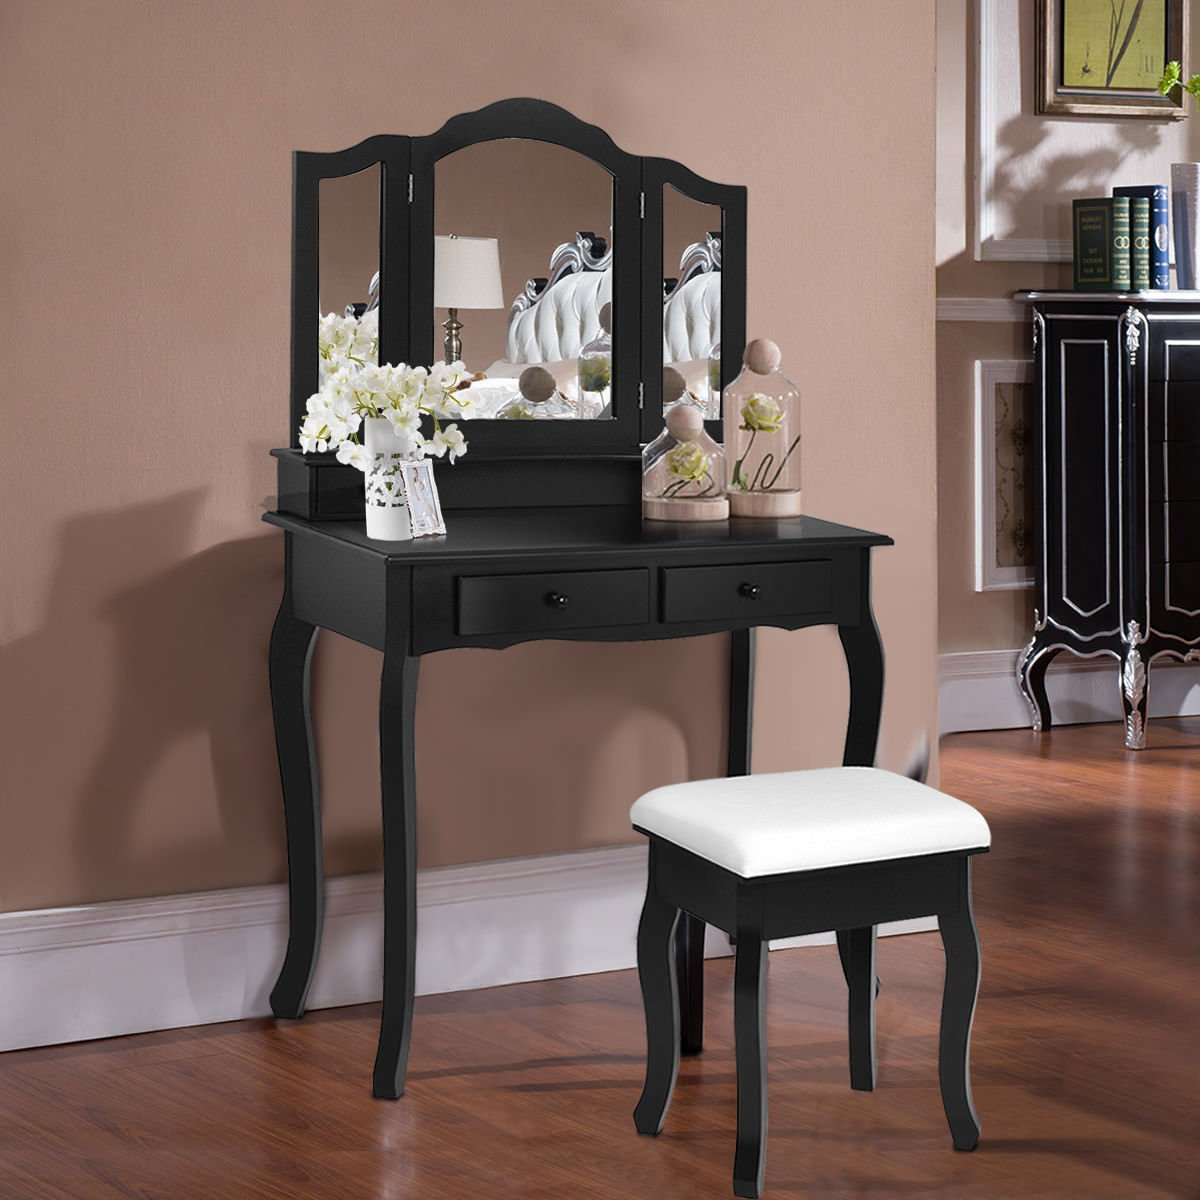 Giantex Bathroom Vanity Set Tri-Folding Mirror W/Bench 4 Drawer Dressing Table Make-up Vanity Table Set (Black)